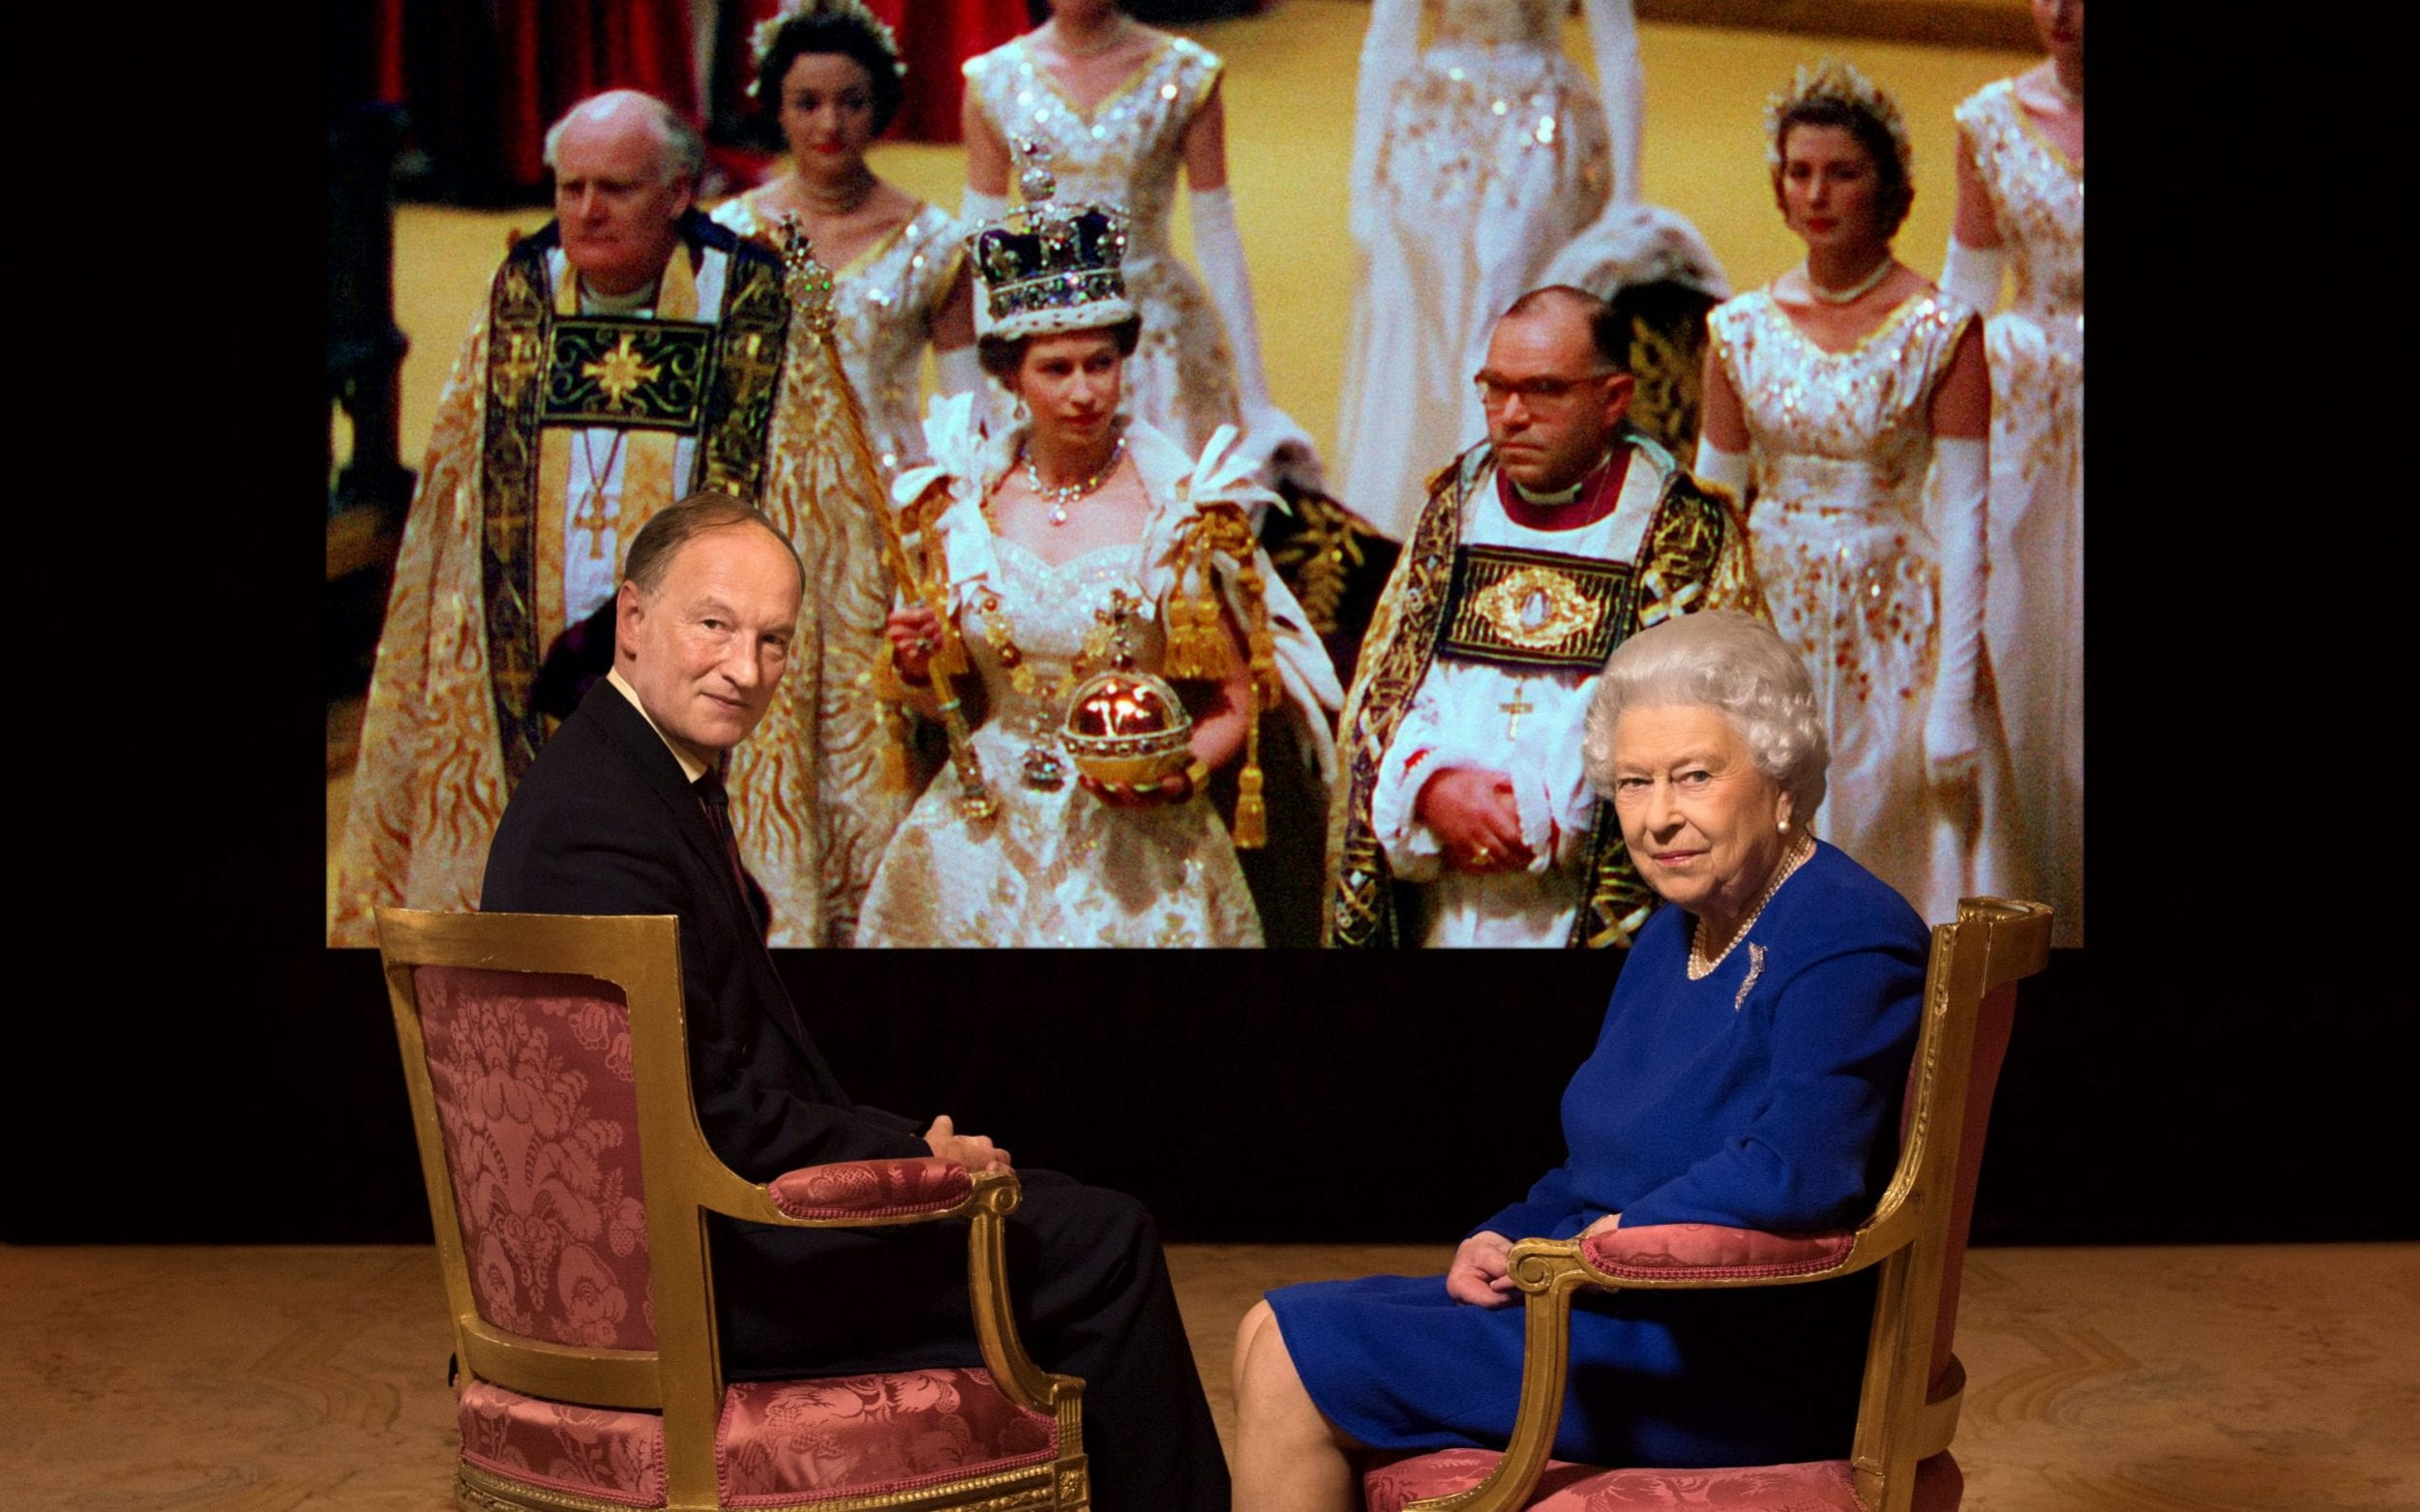 The Queen with Coronation expert Alastair Bruce